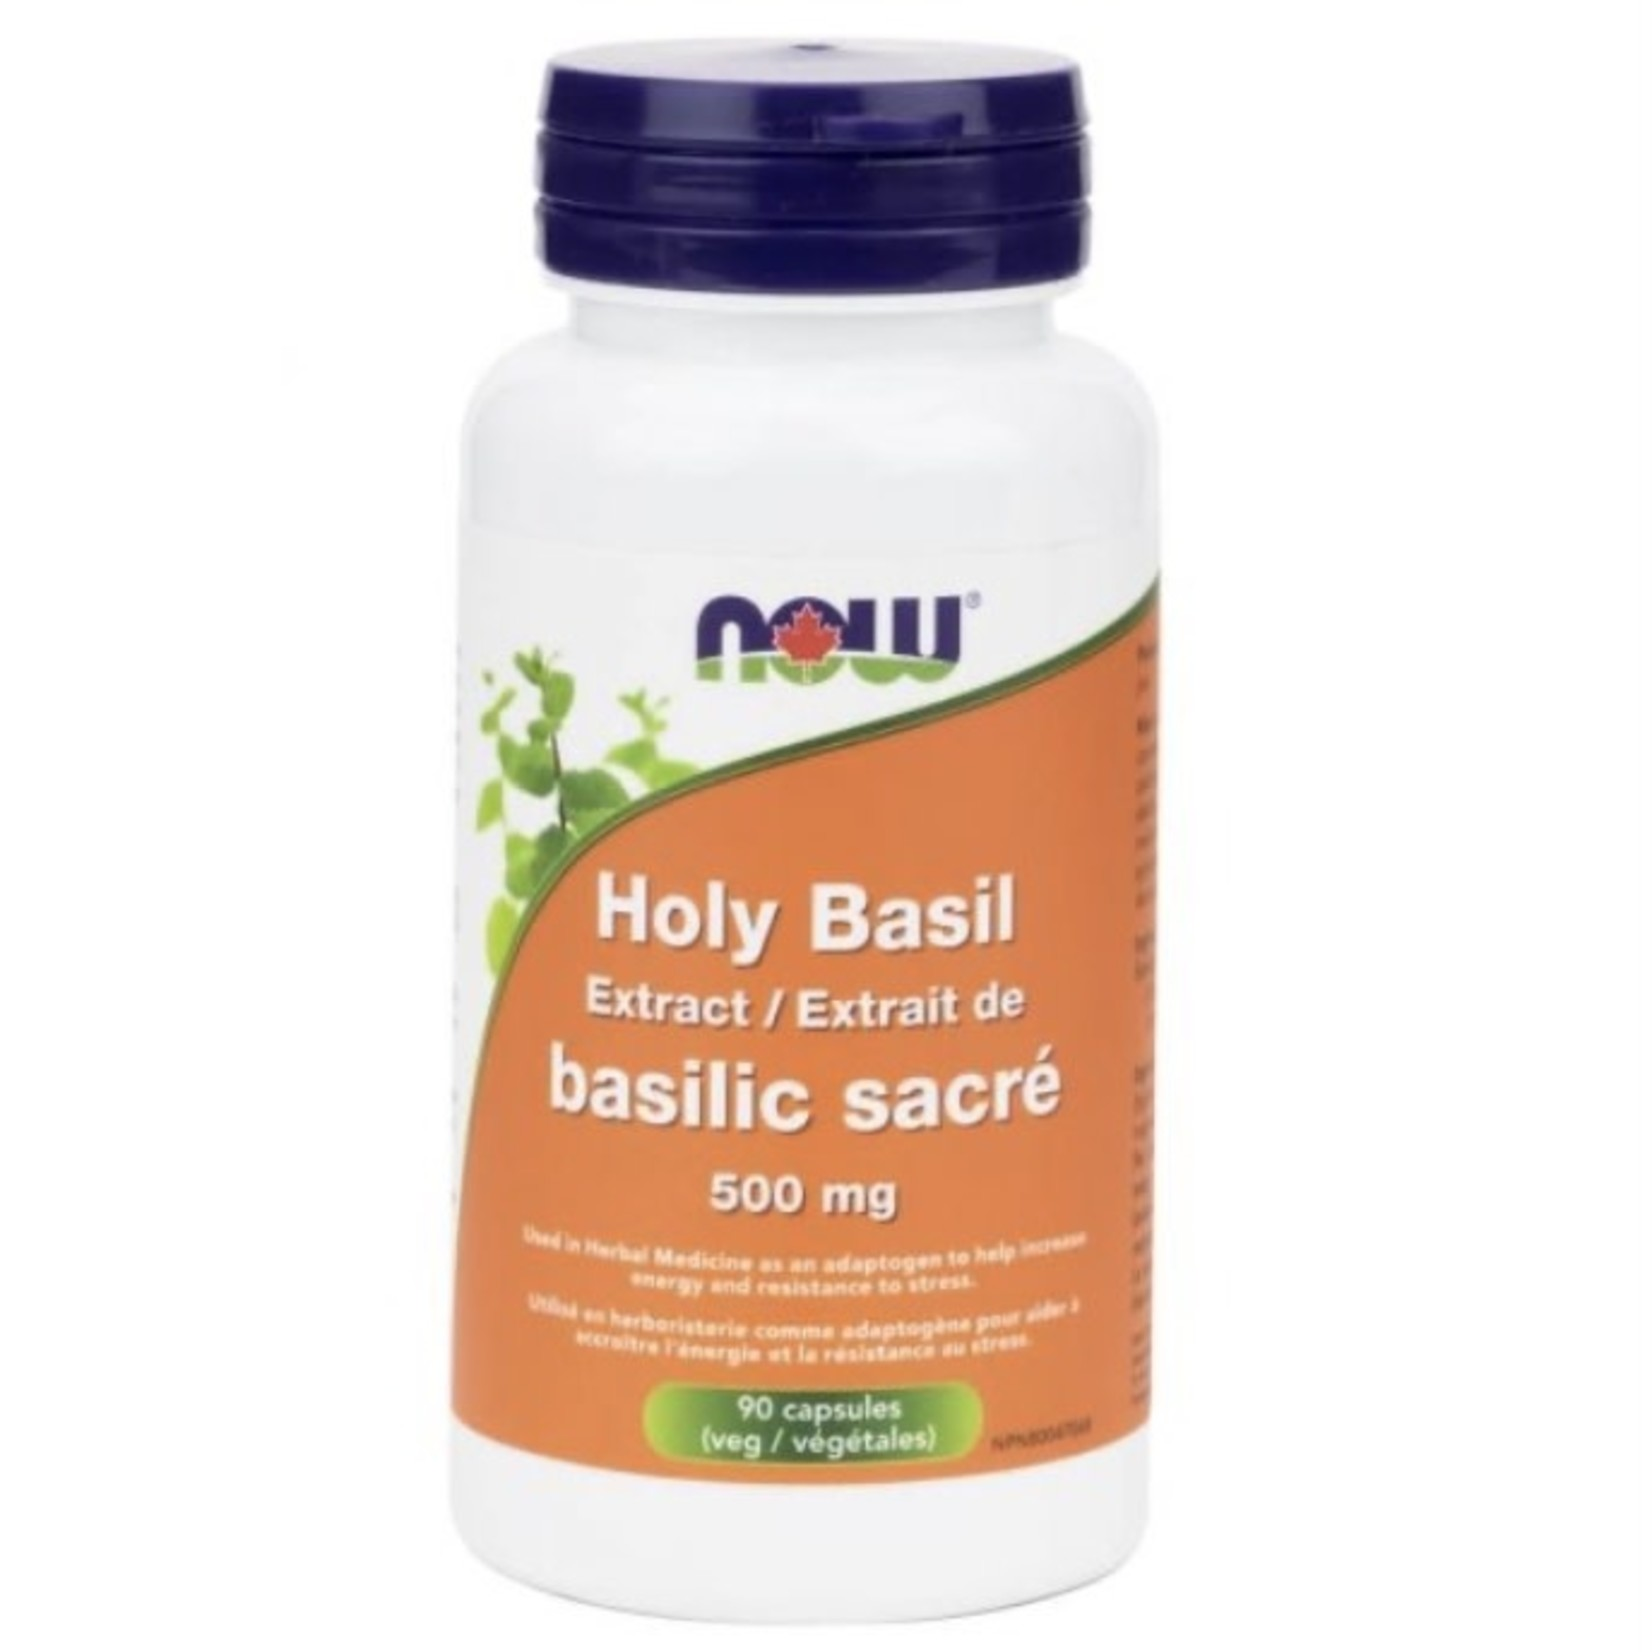 Now Now Holy Basil 500mg 90 caps